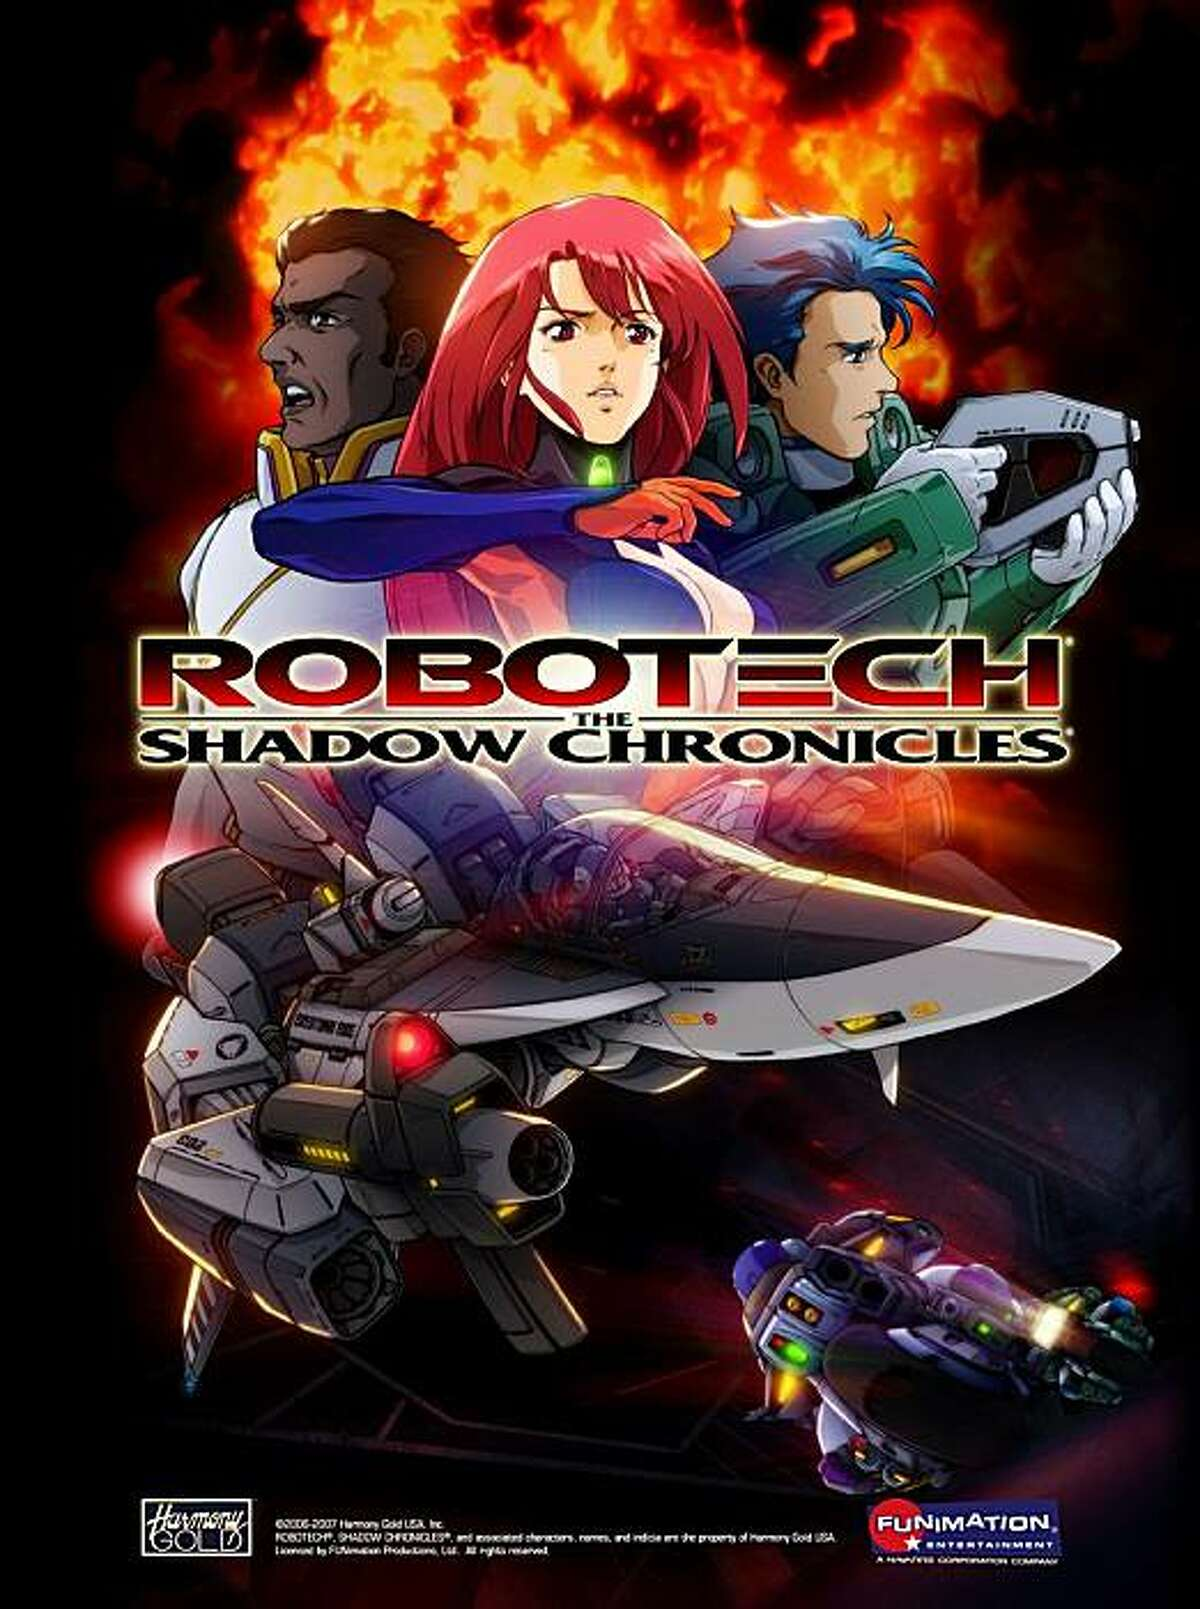 """Cover image from the recent Blu-ray release of """"Robotech: The Shadow Chronicles,"""" featuring (from left to right) Vince Grant, Ariel, and Scott Bernard."""